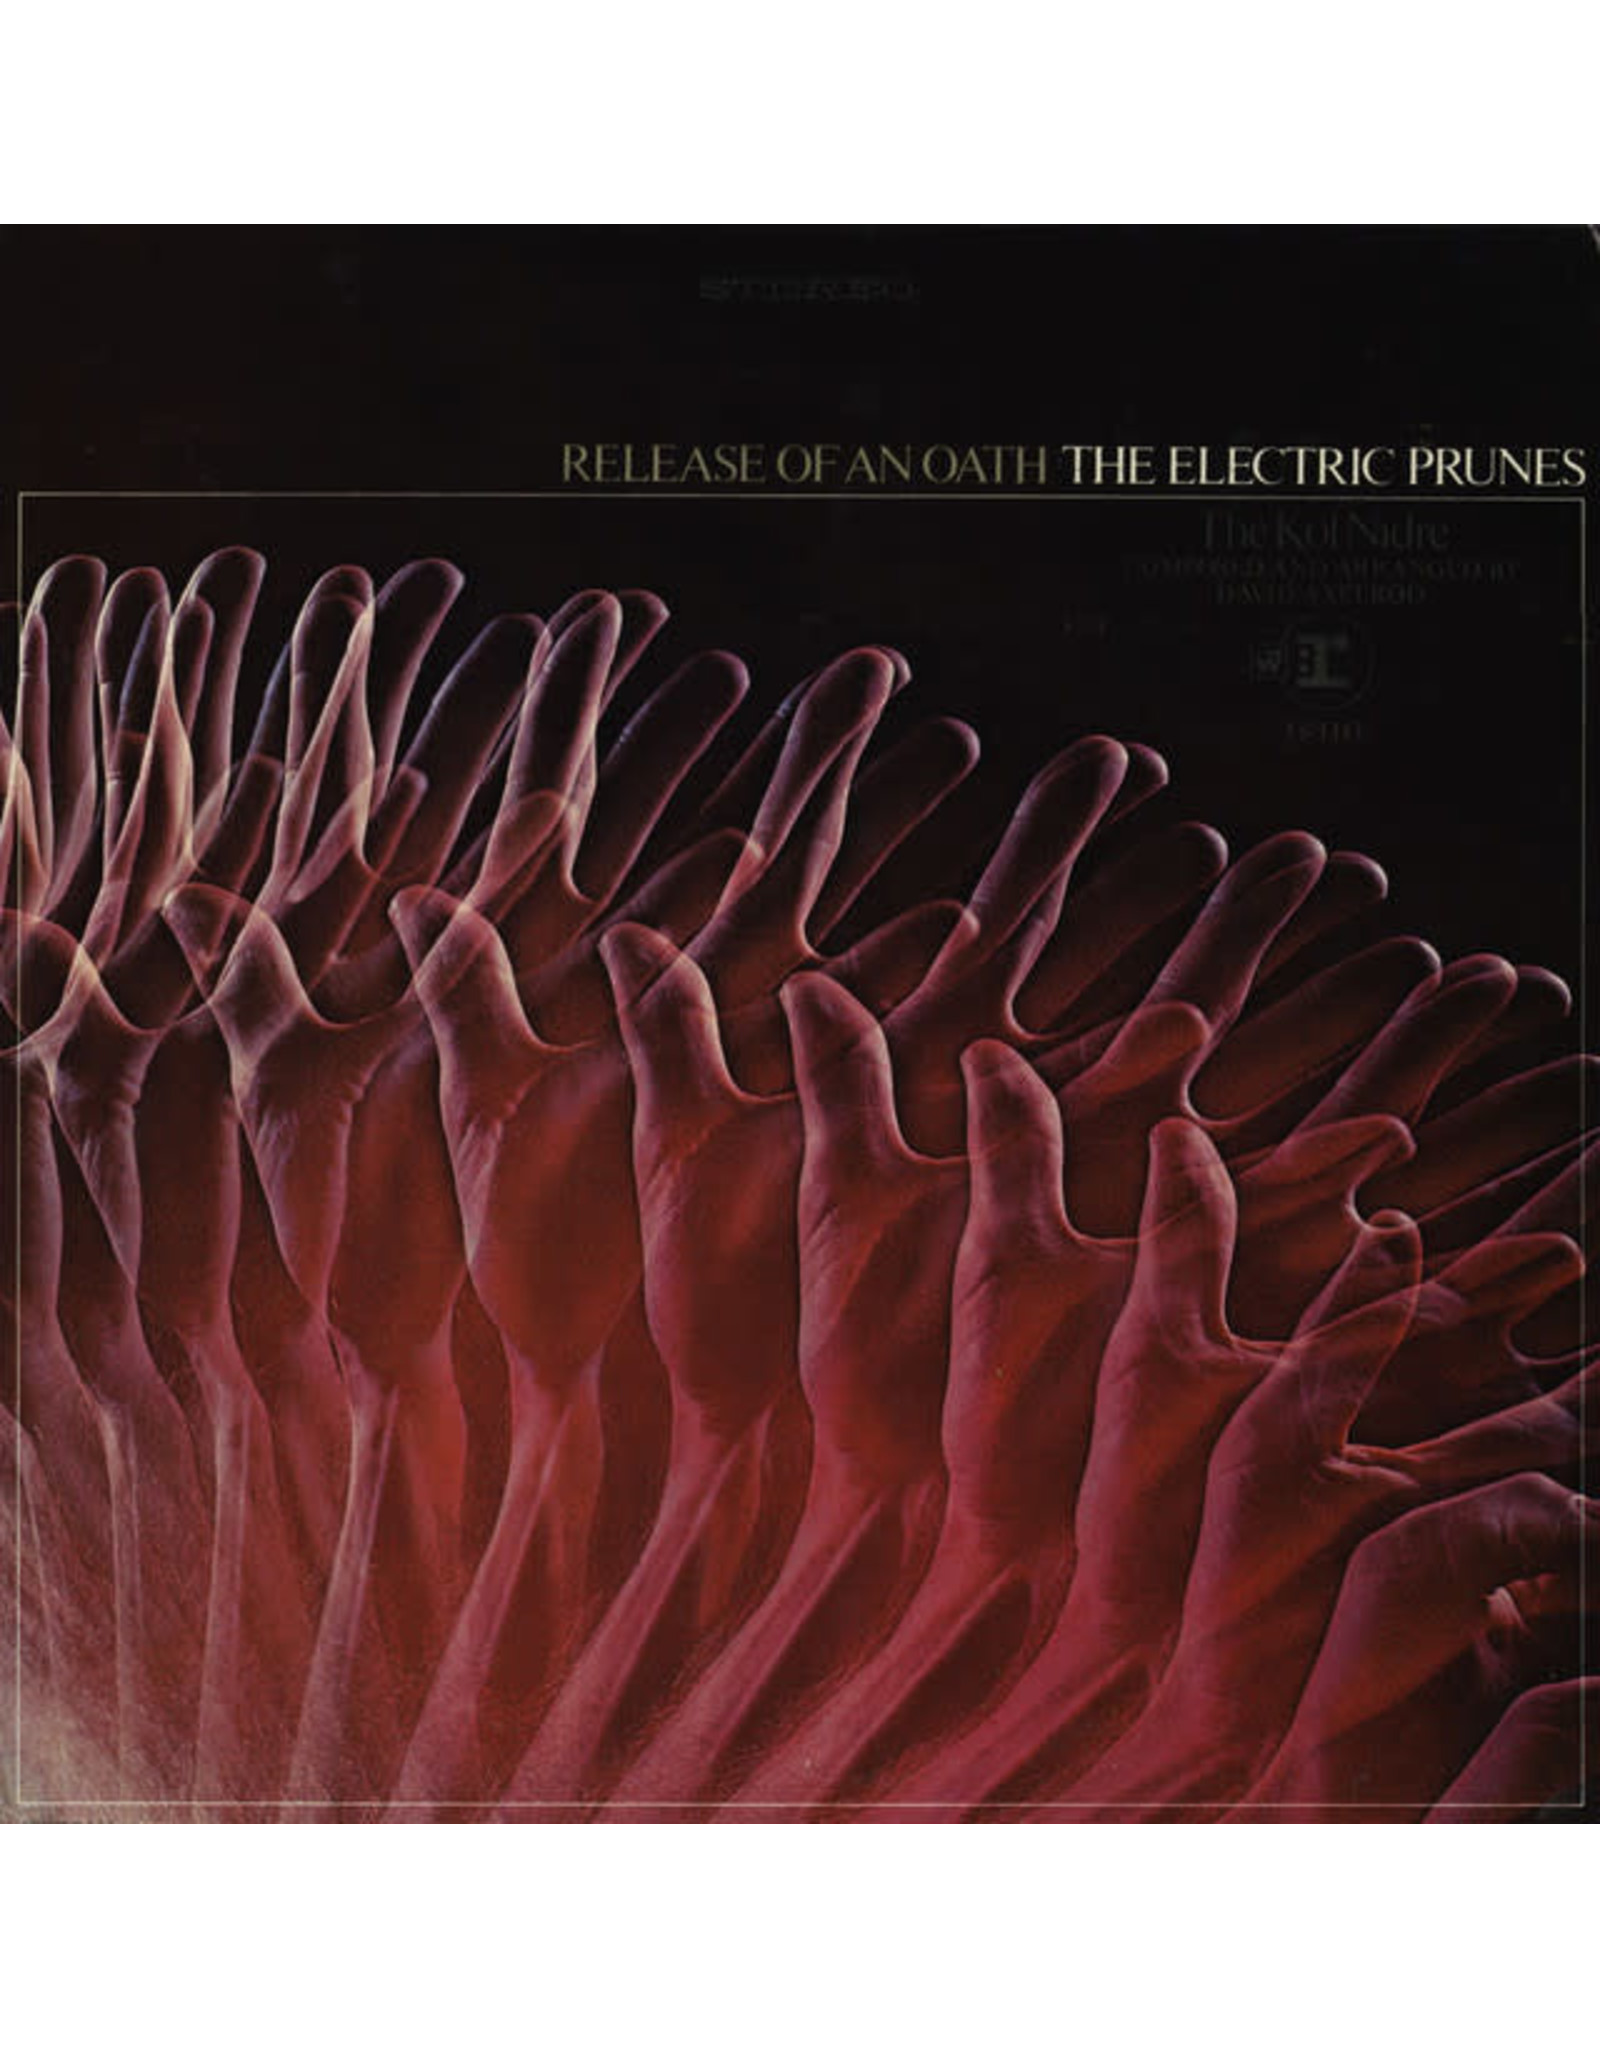 Vinyl The Electric Prunes - Release Of An Oath